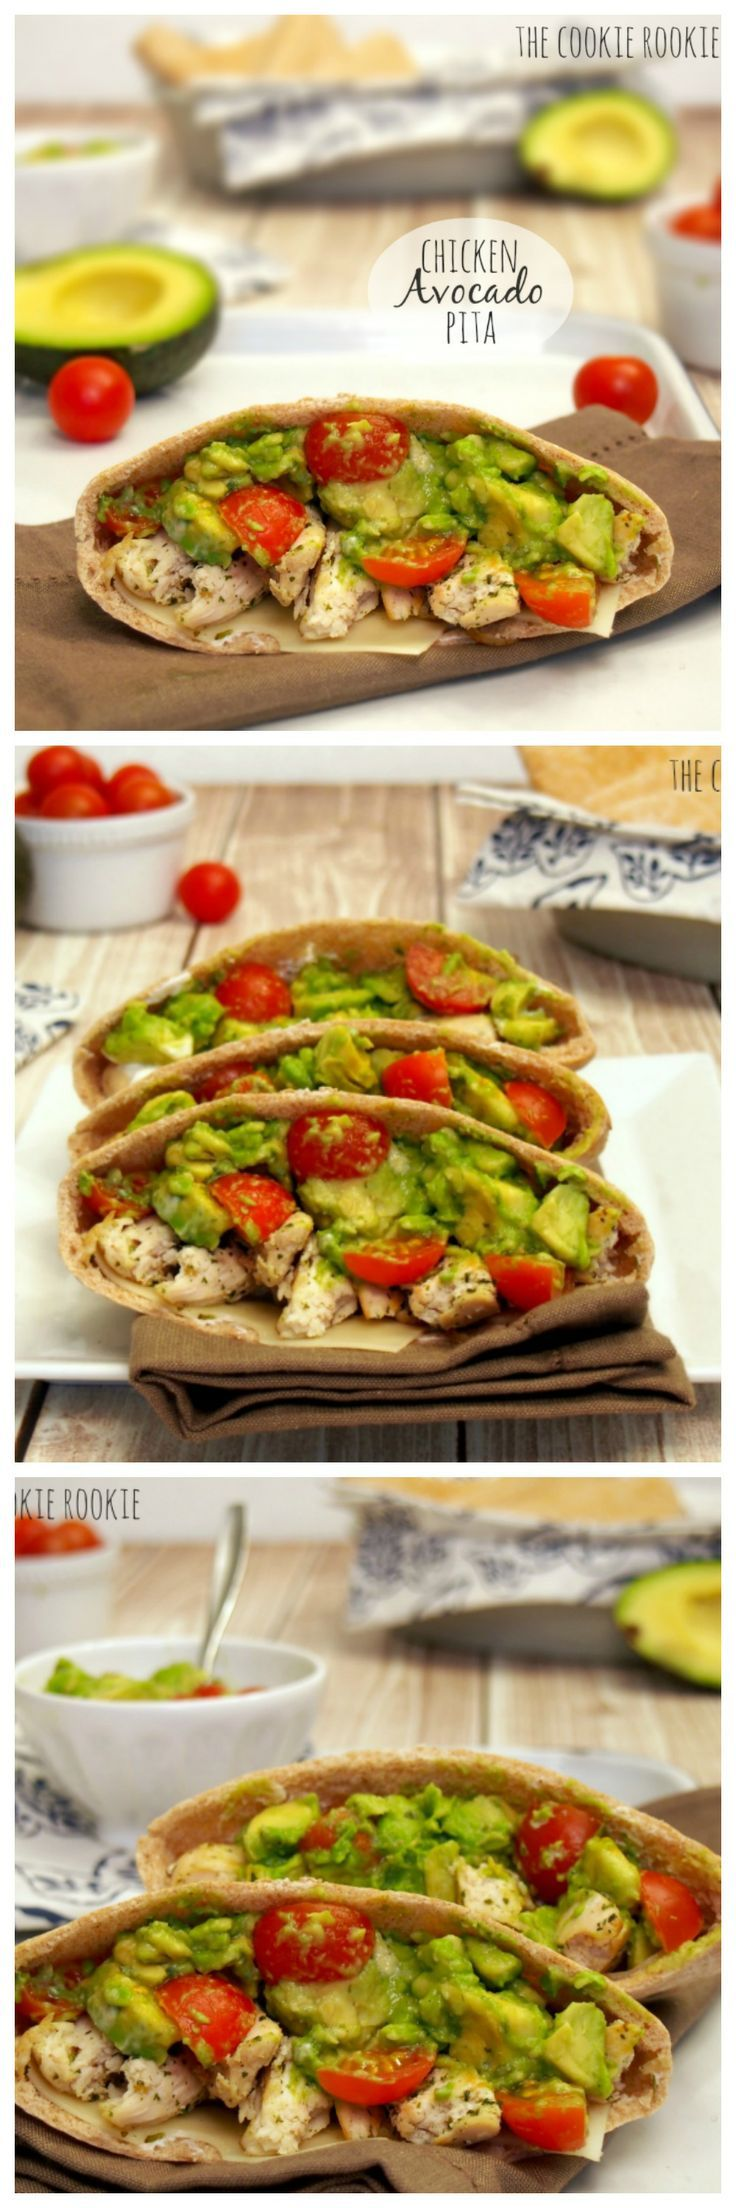 mens nike free 5 0 flash Healthy Grilled Chicken Avocado Pitas are the perfect Summer Treat  Made with Greek Yogurt    The Cookie Rookie